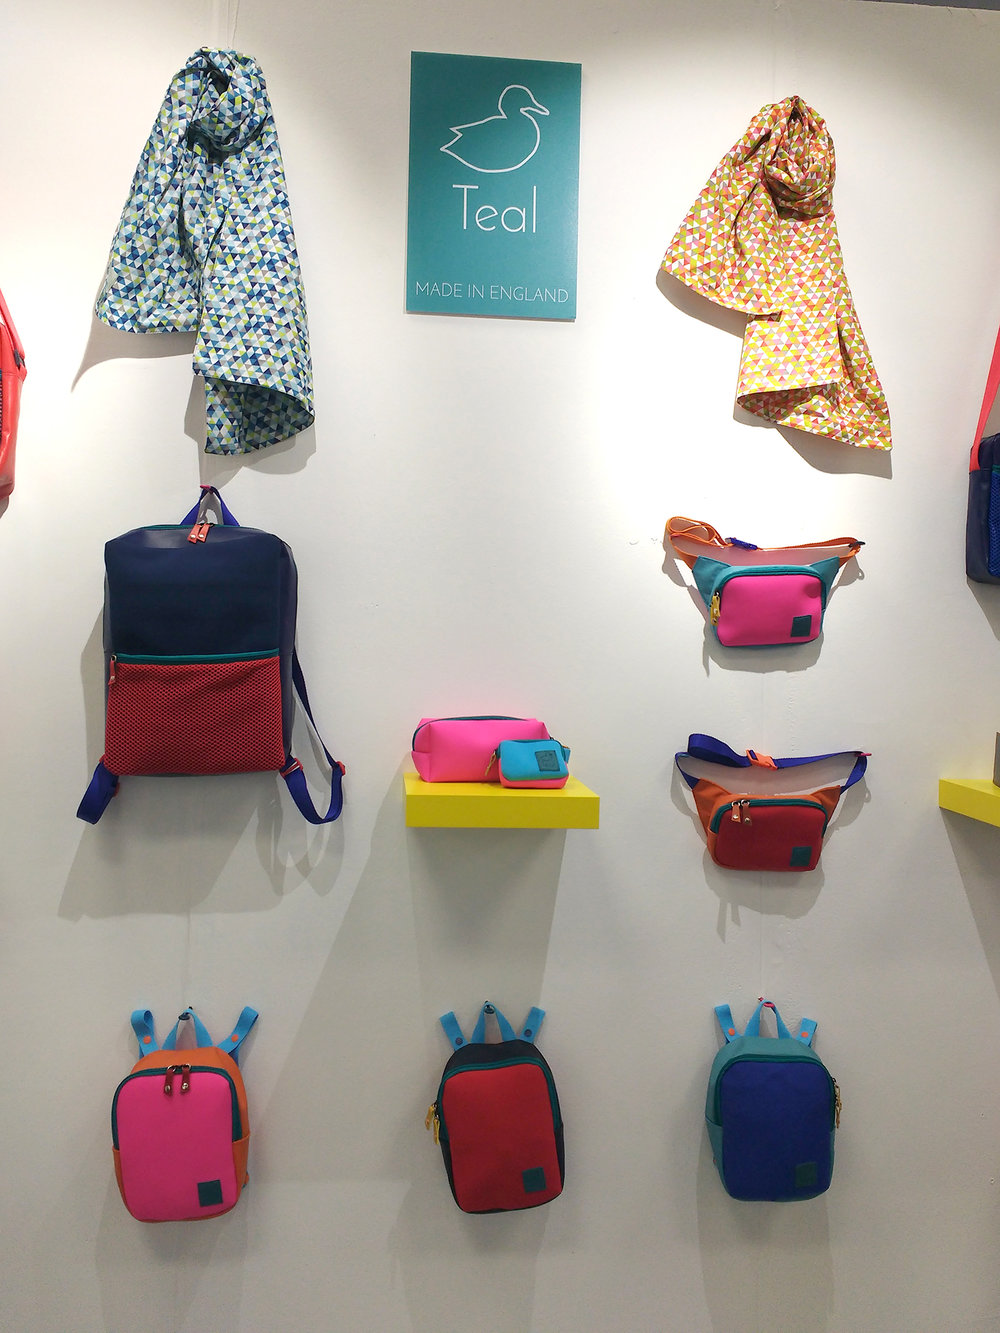 Teal's Collection of brightly coloured bags.